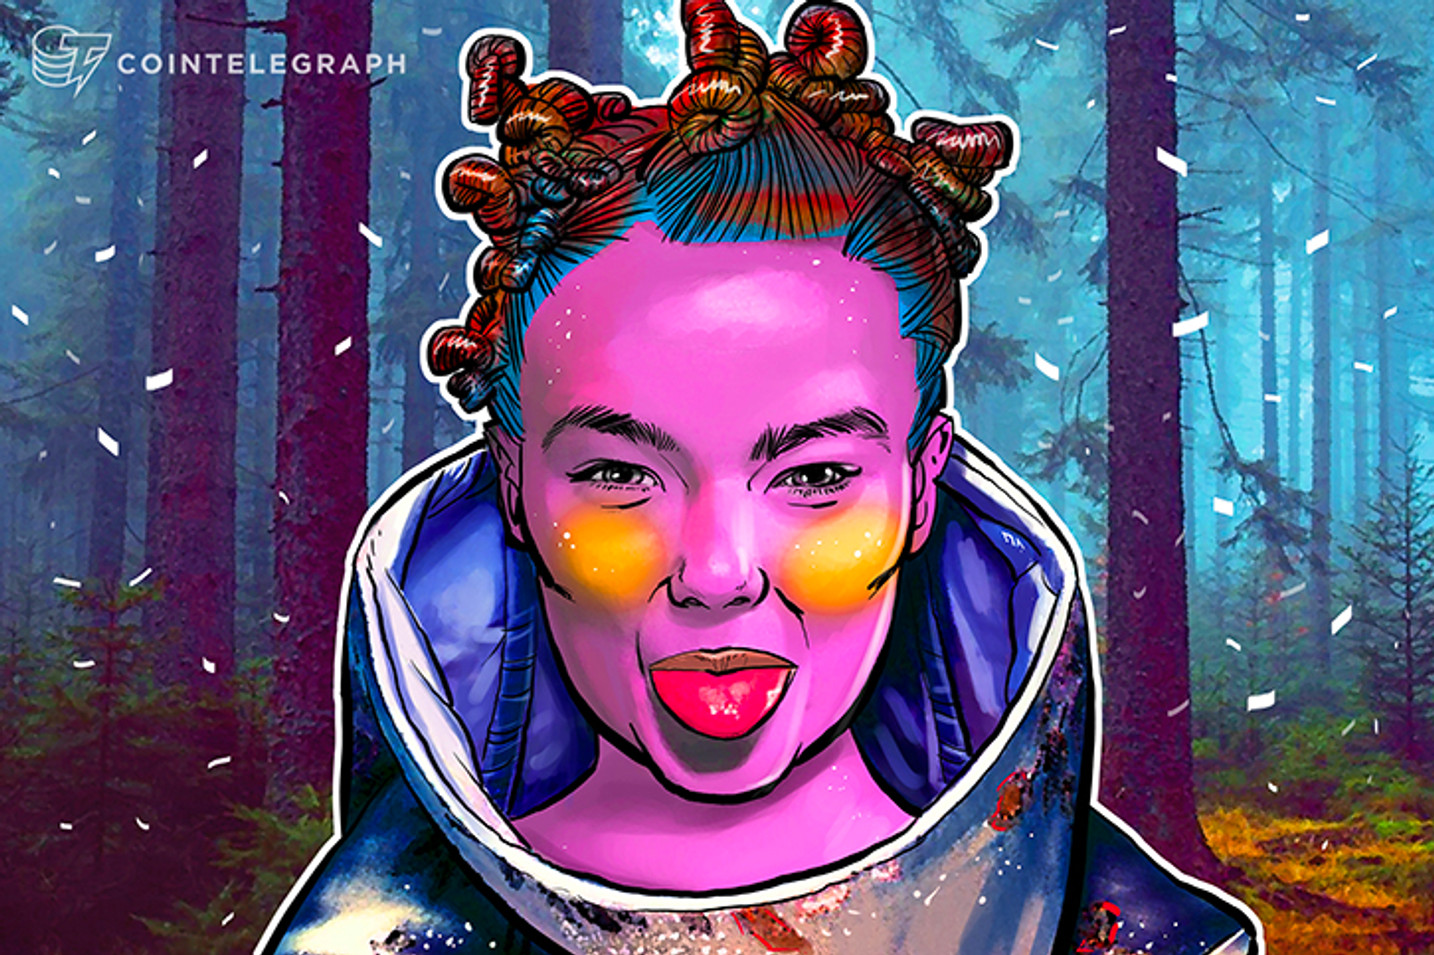 Bjork's Latest Album Available With Bitcoin, Other Cryptocurrencies, Shows Adoption